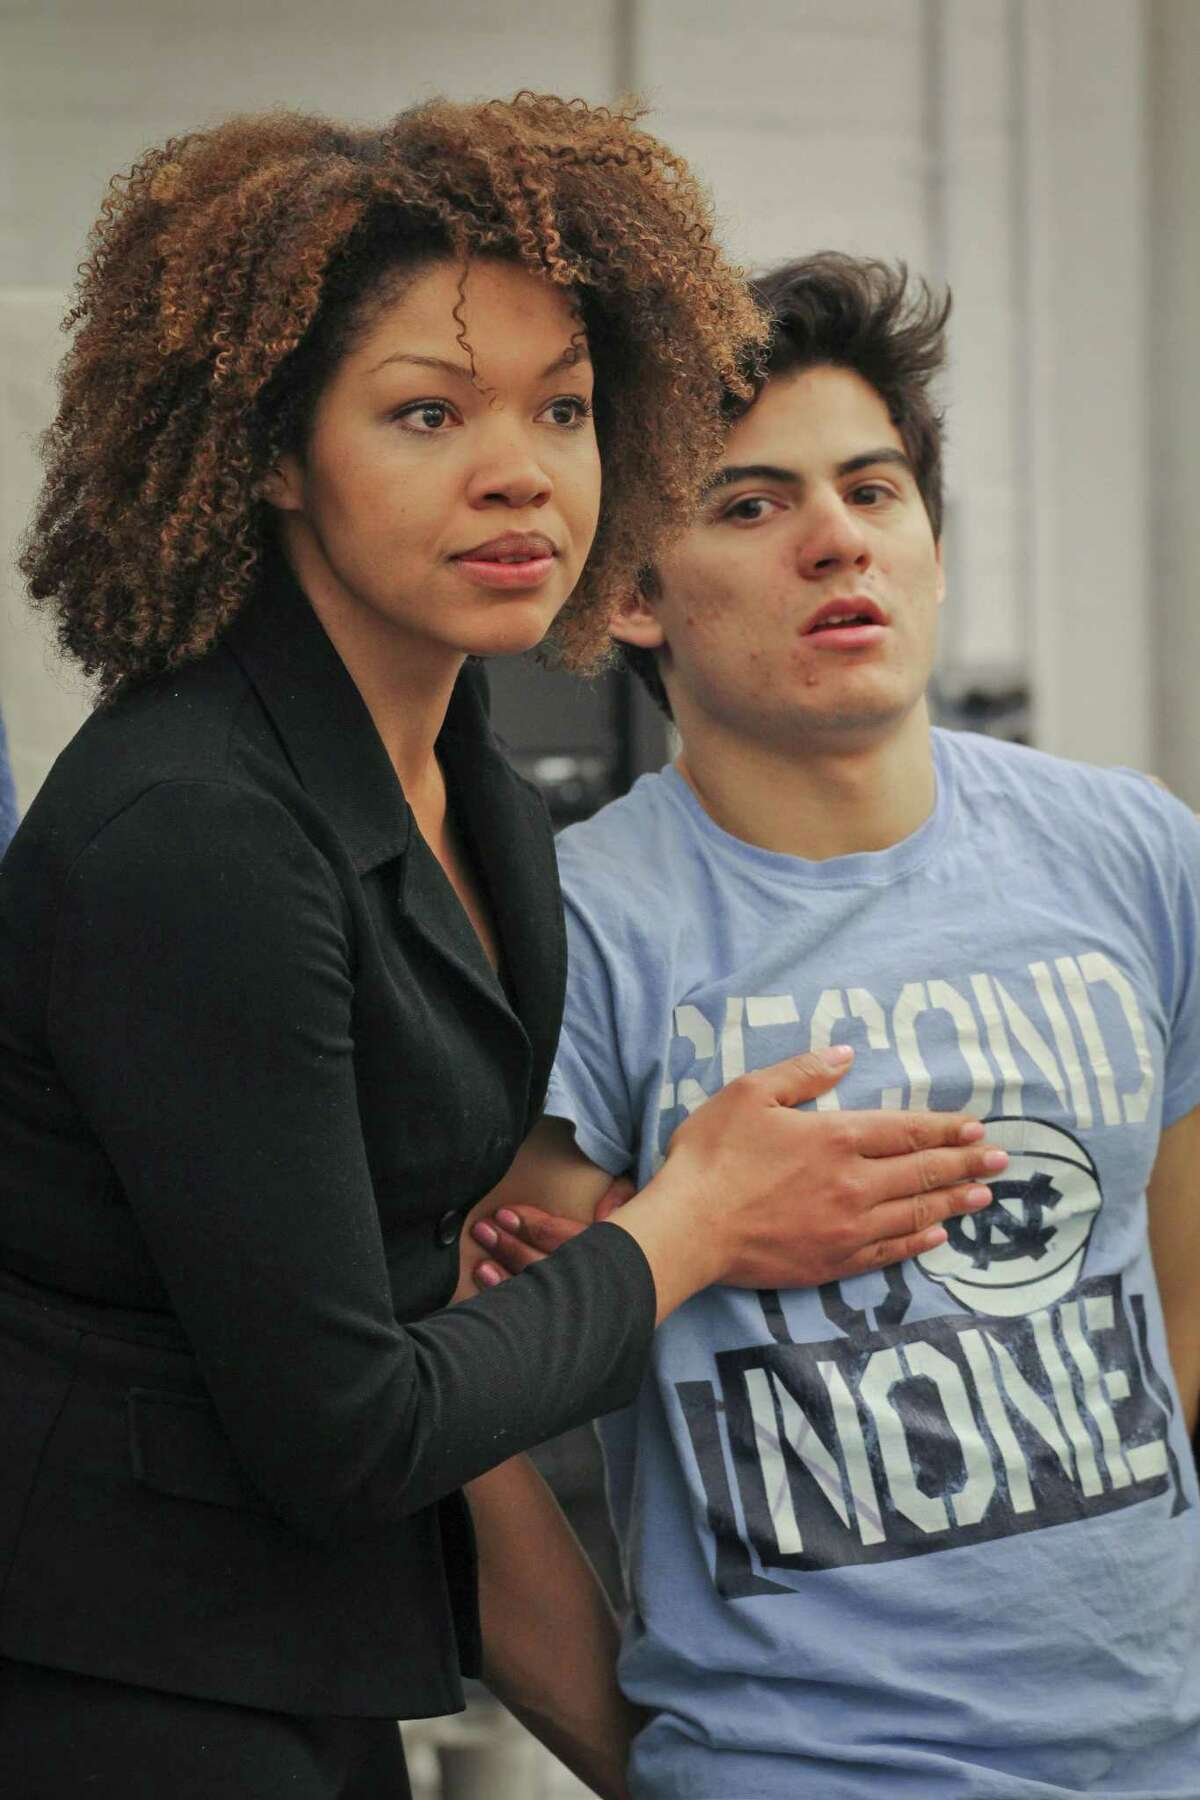 Bradley Tejeda, pictured with cast member Chalia La Tour, received his master's degree from Yale University, where he appeared in Yale Cabaret's production of